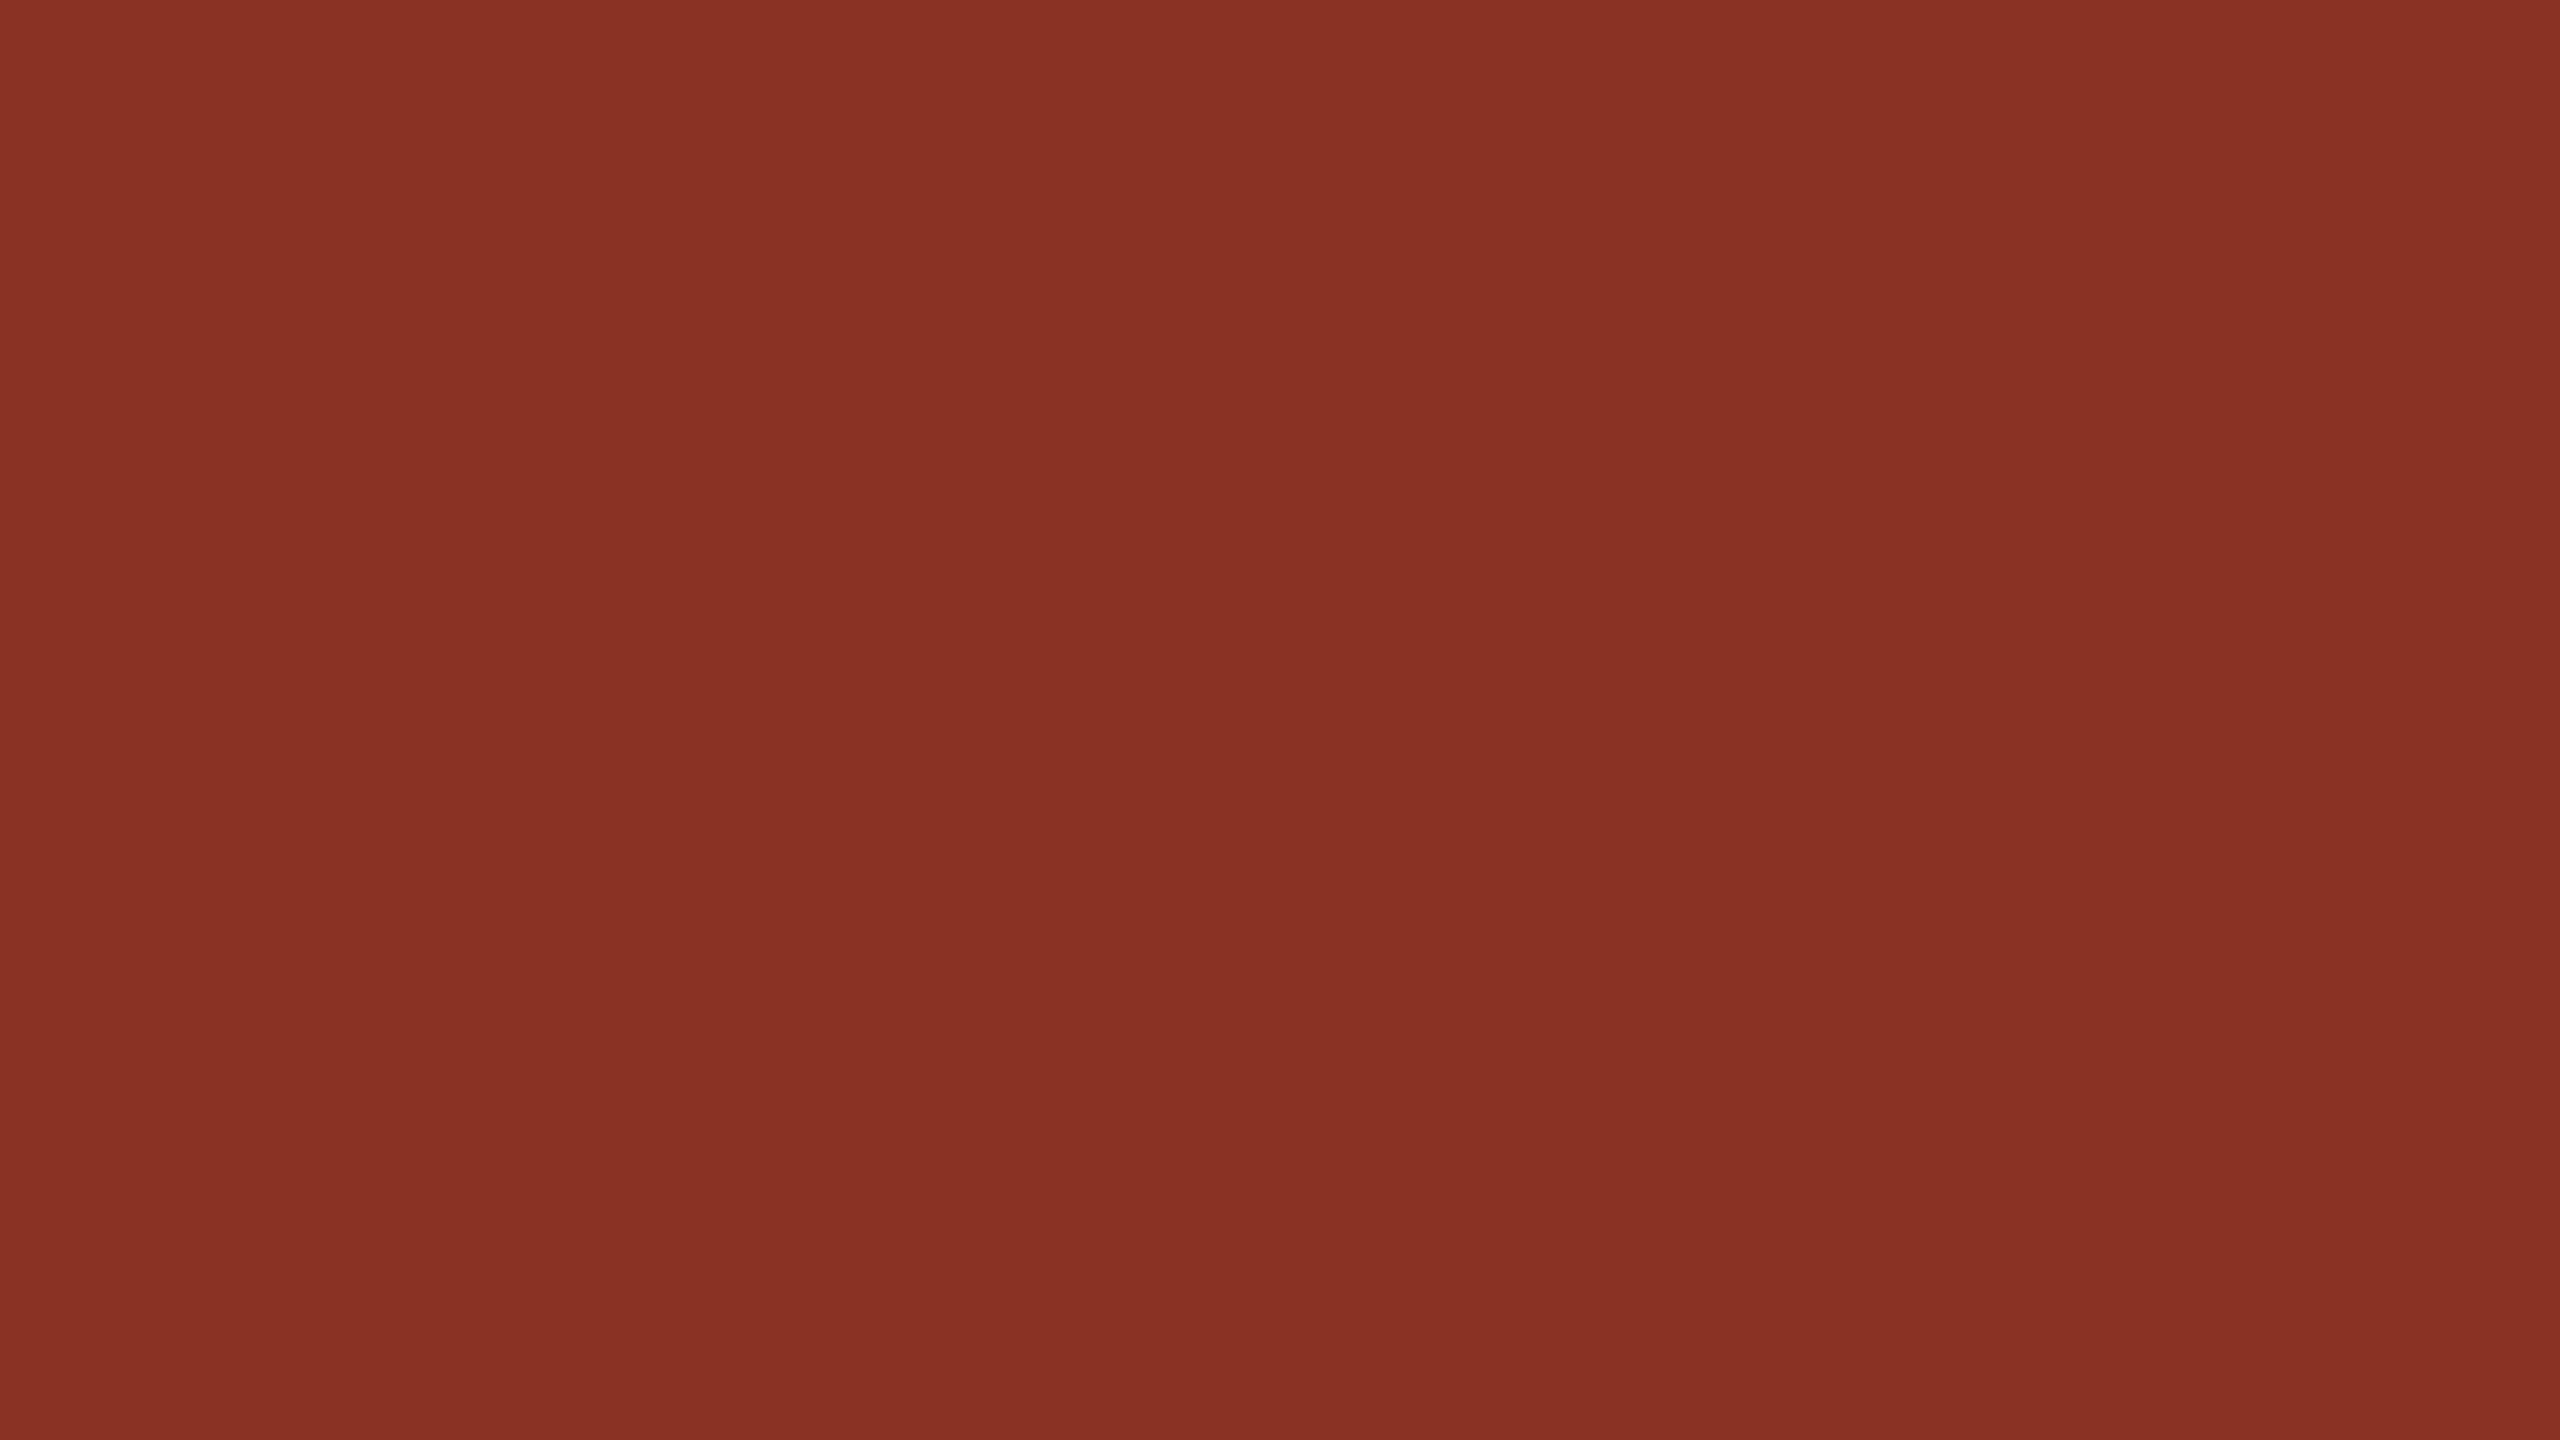 2560x1440 Burnt Umber Solid Color Background